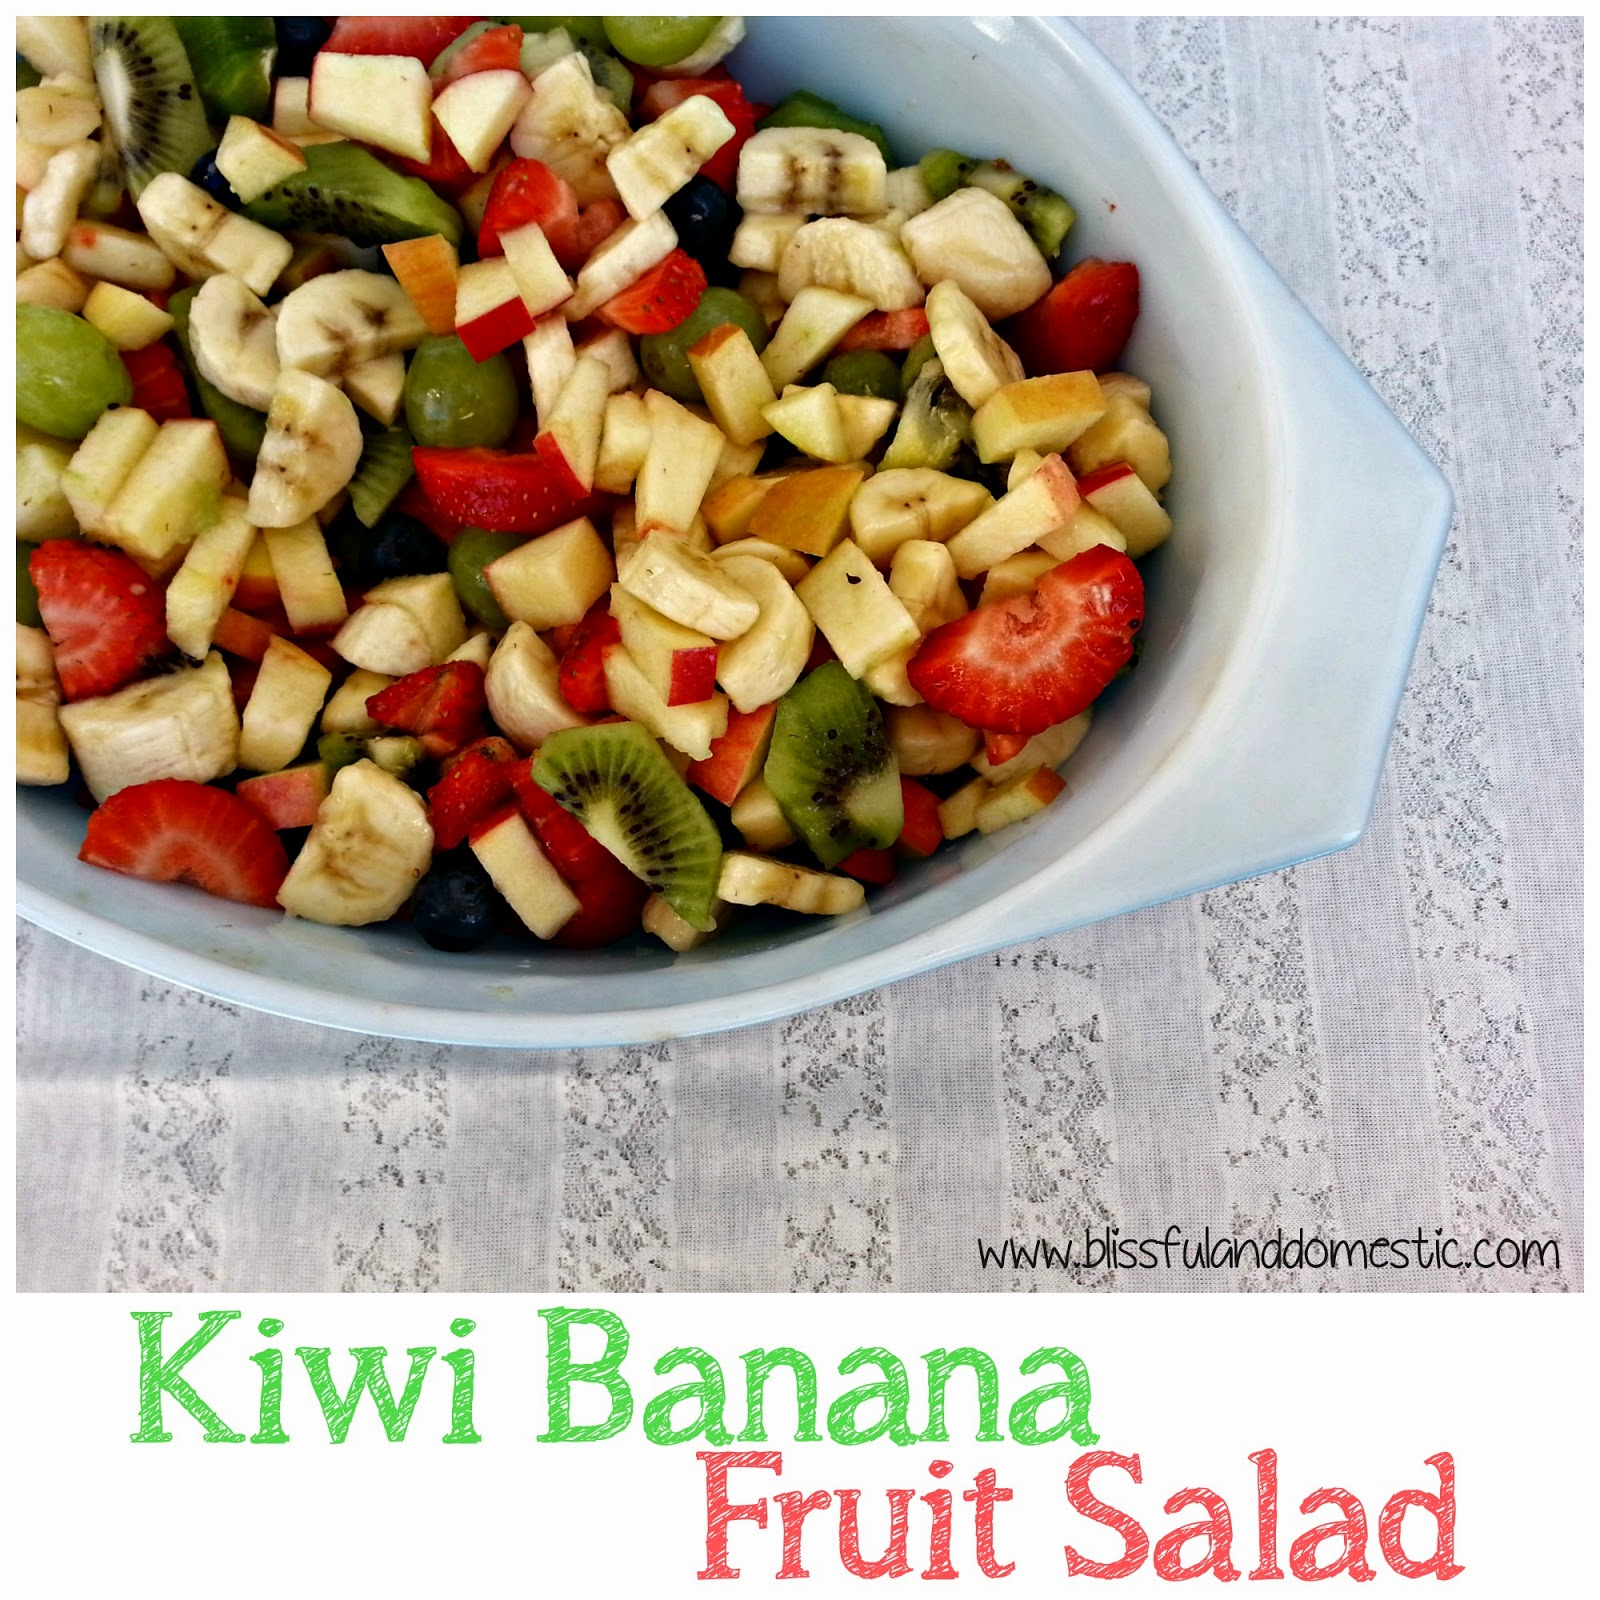 Kiwi Banana Fruit Salad...